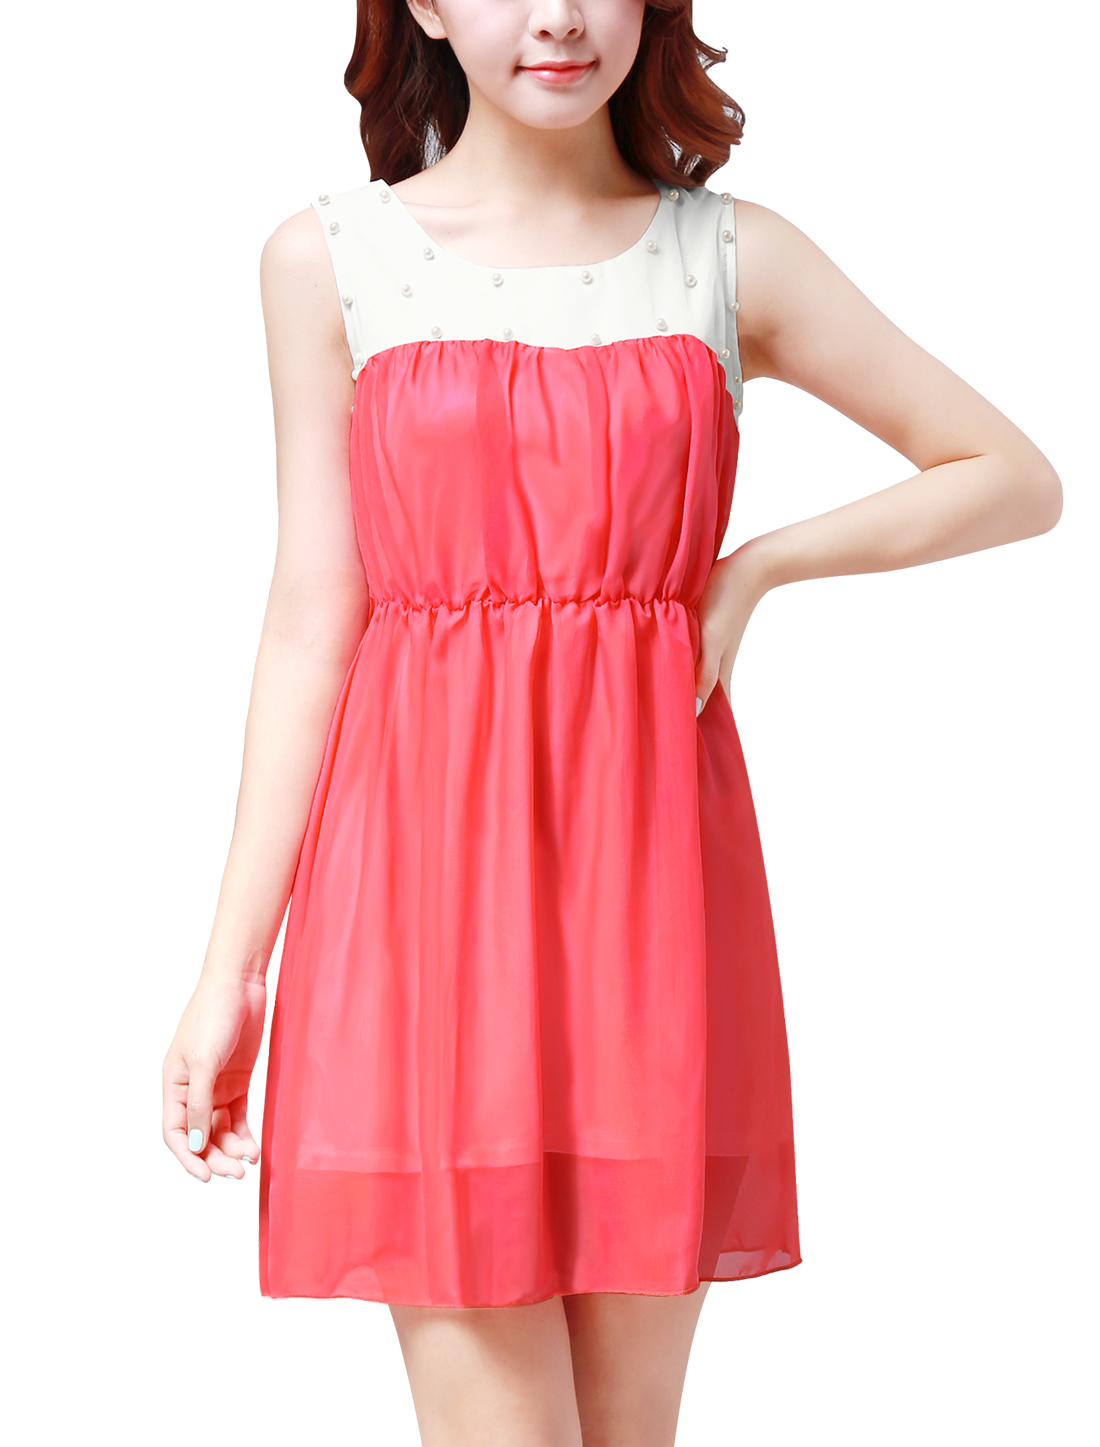 Woman New Fashion Scoop Neck Sleeveless Watermelon Red Mini Dress M